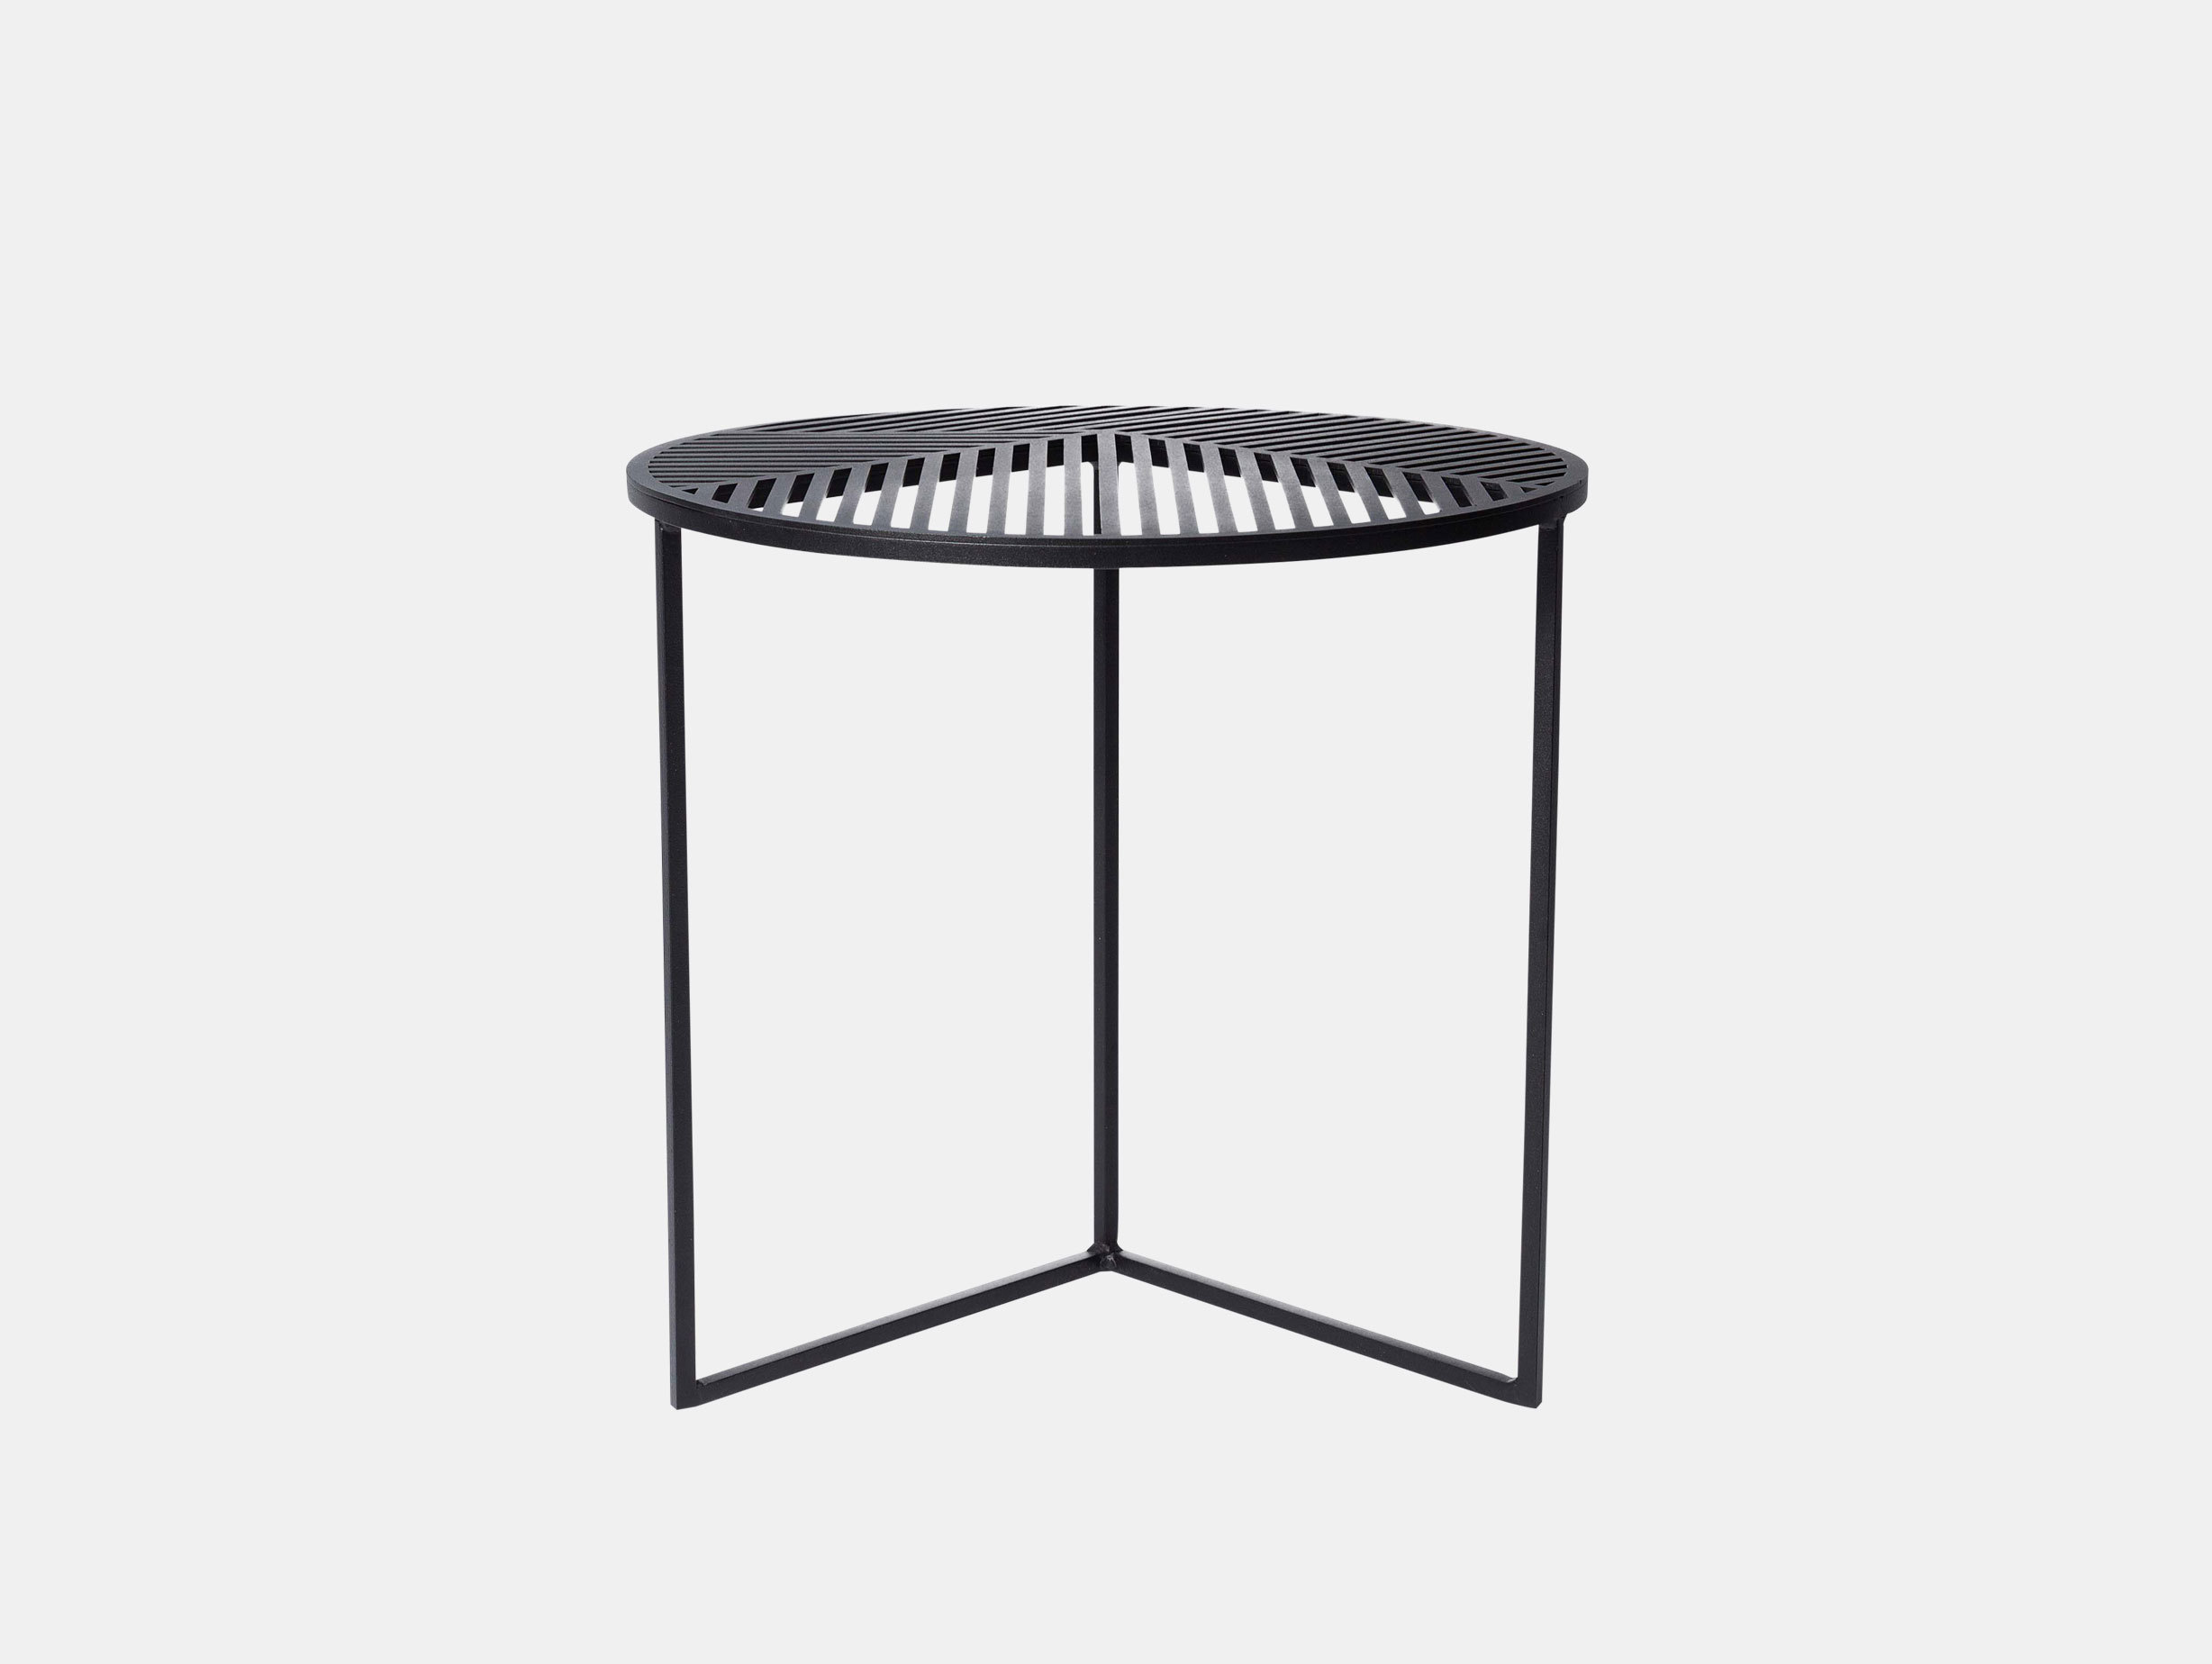 Petite Friture Iso Side Table Round Black Pool